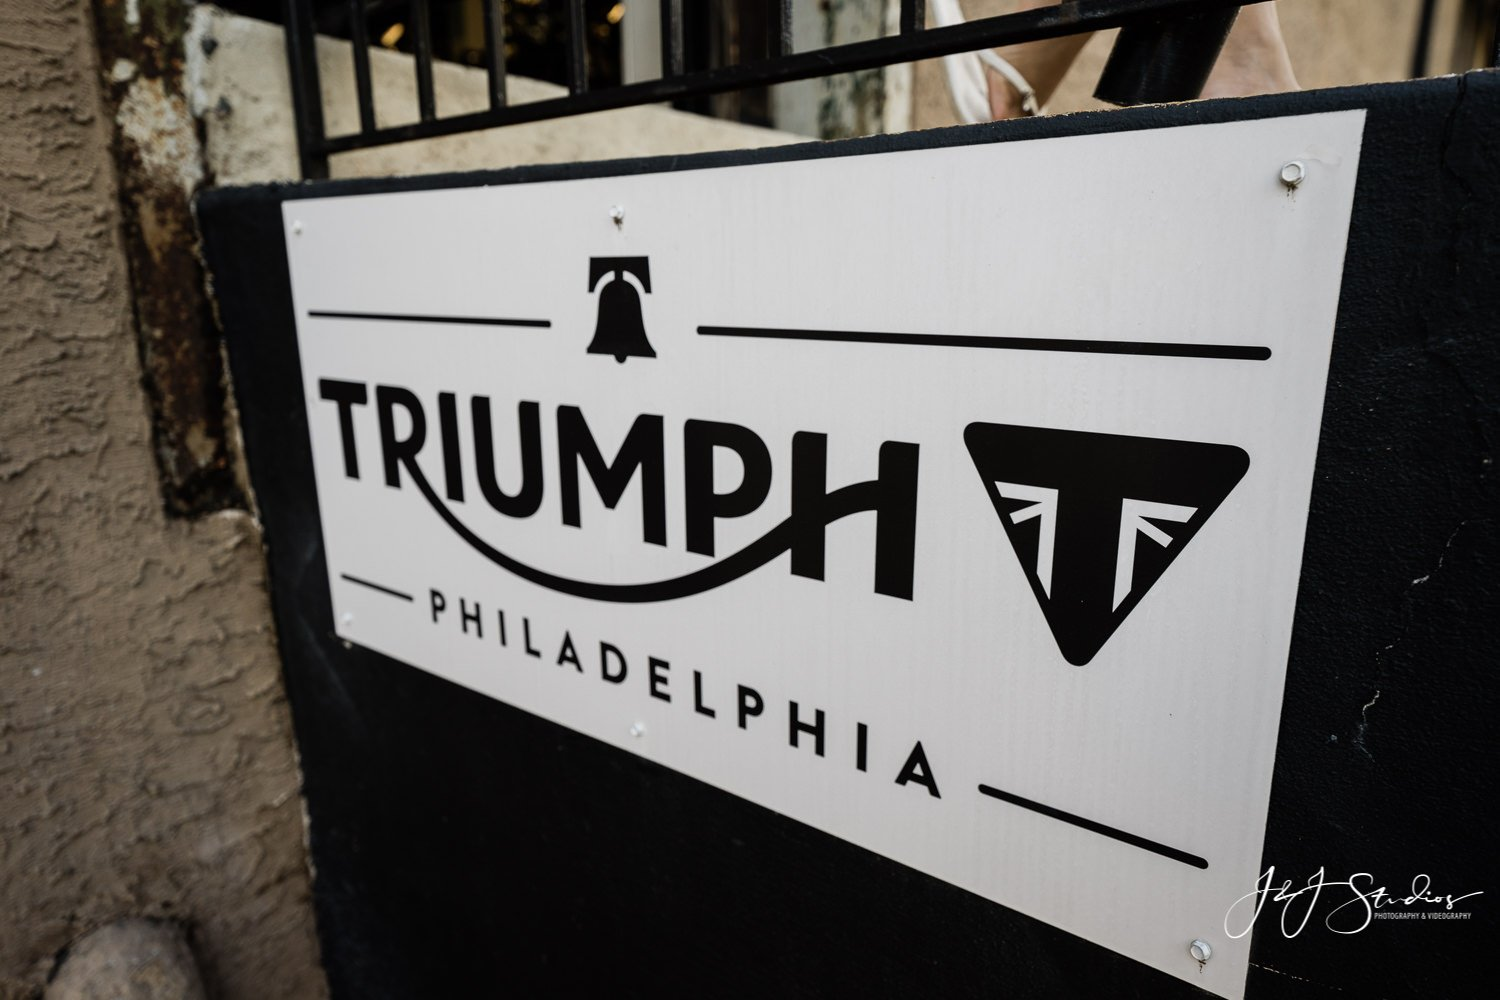 dgr sponsor triumph philly